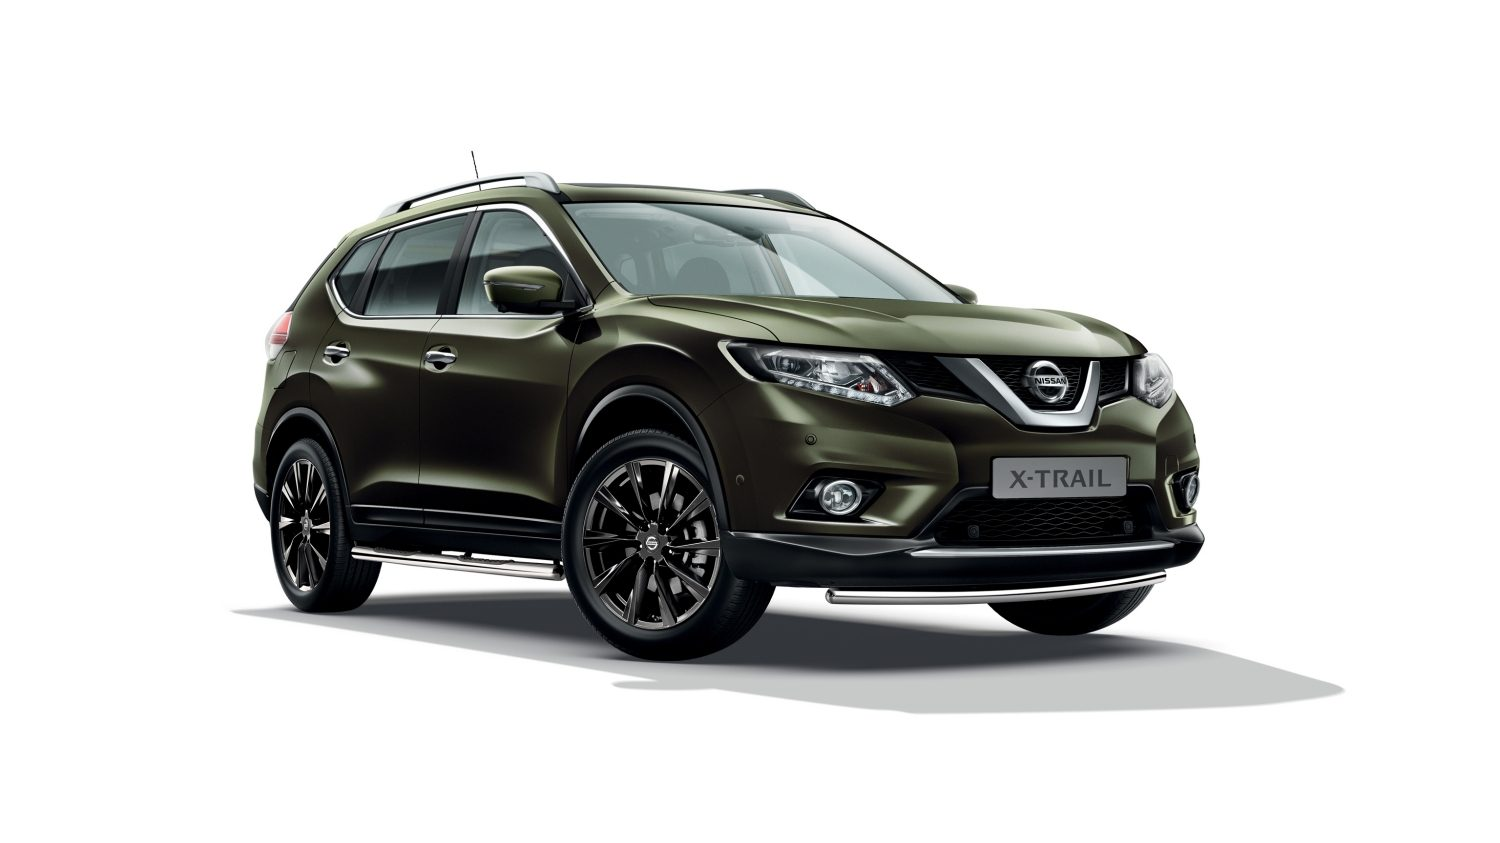 Nissan X-Trail - Styling - Front view